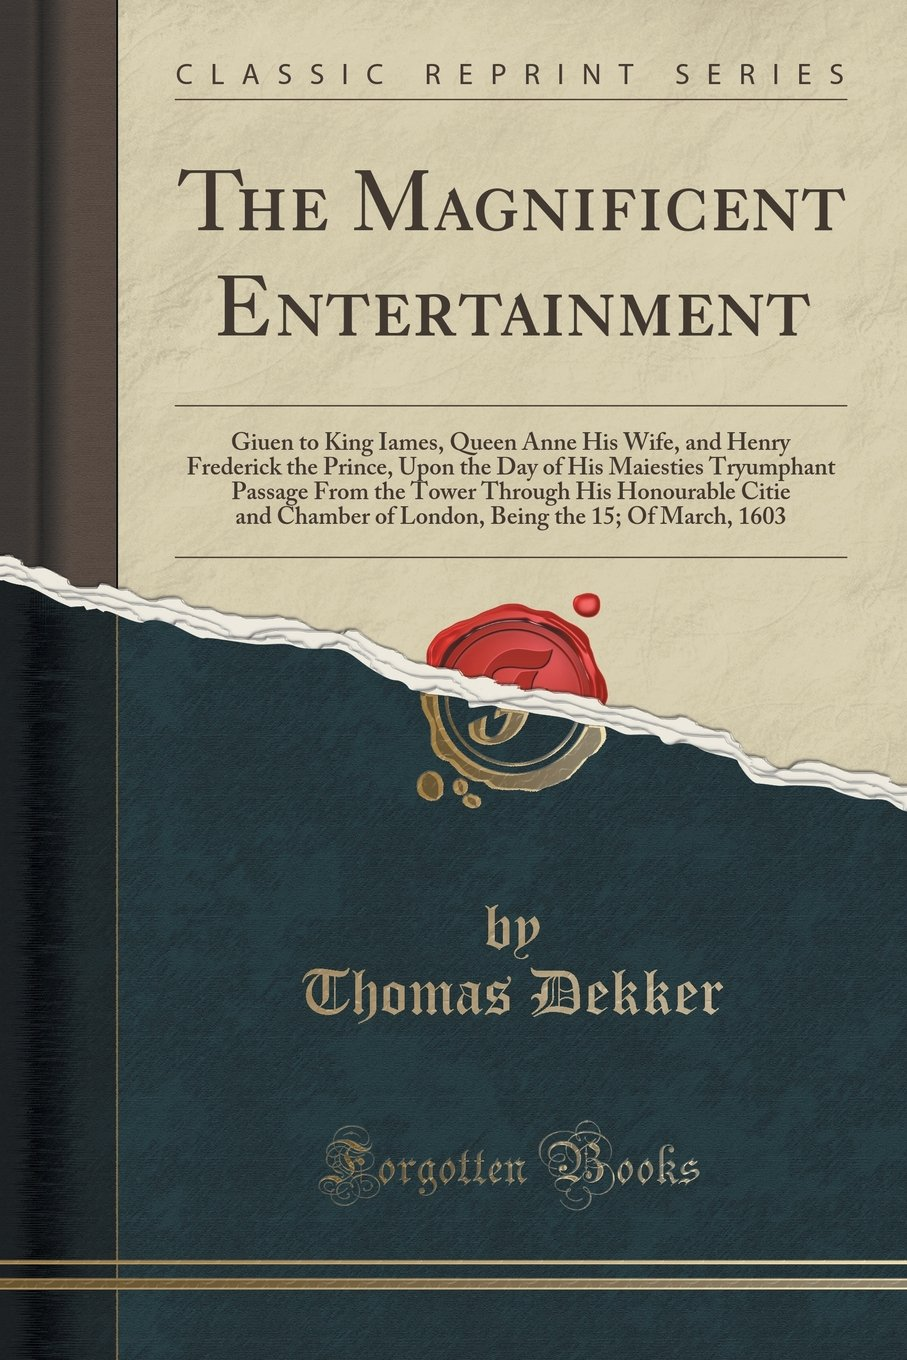 The Magnificent Entertainment: Giuen to King Iames, Queen Anne His Wife, and Henry Frederick the Prince, Upon the Day of His Maiesties Tryumphant ... of London, Being the 15; Of March, 1603 pdf